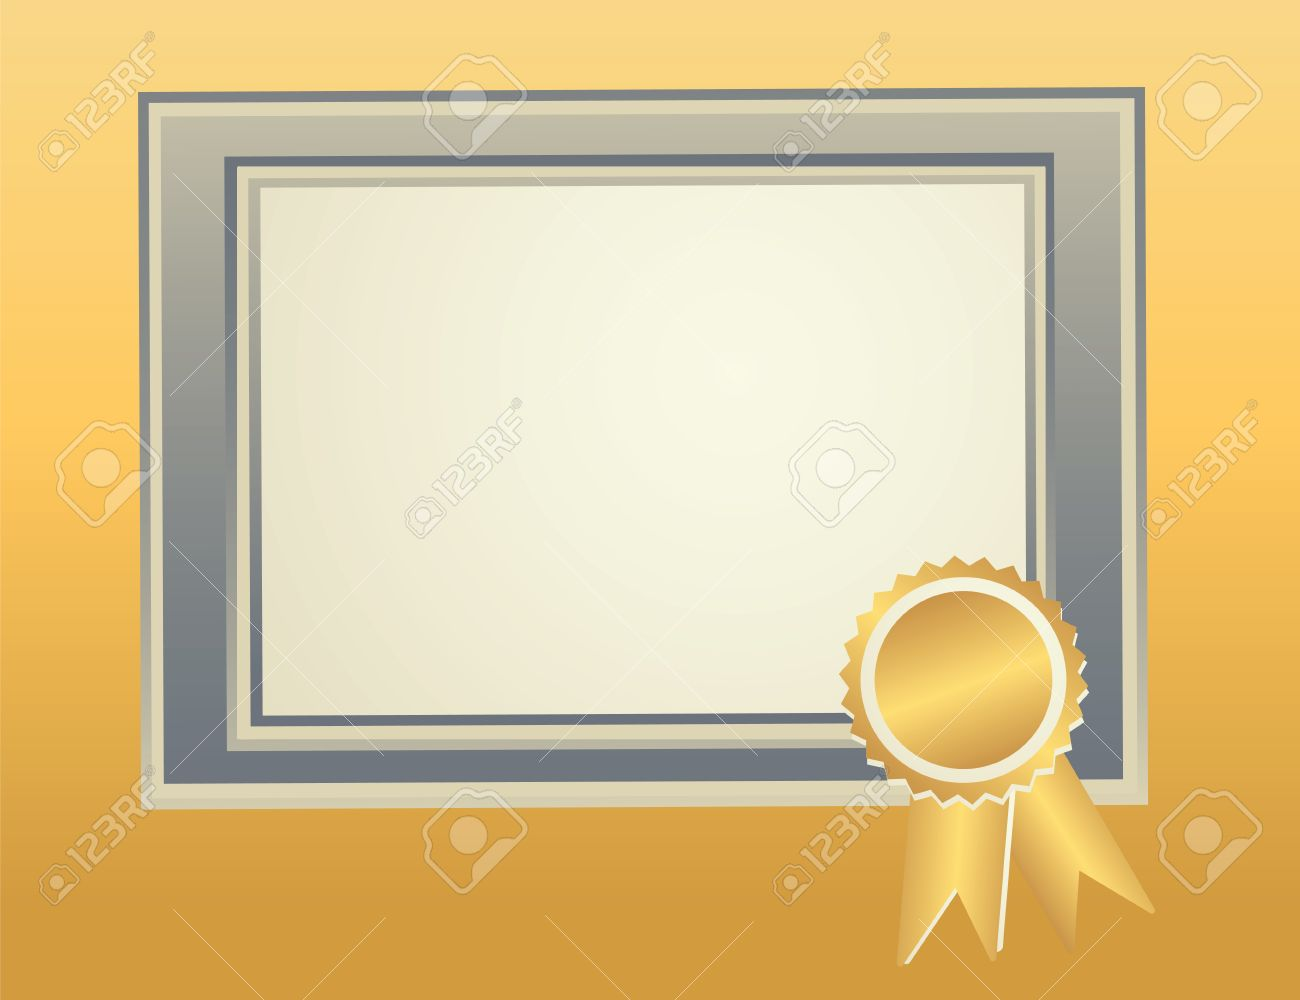 Blank frame template with award seal for certificate diploma blank frame template with award seal for certificate diploma awards completion documents alramifo Images